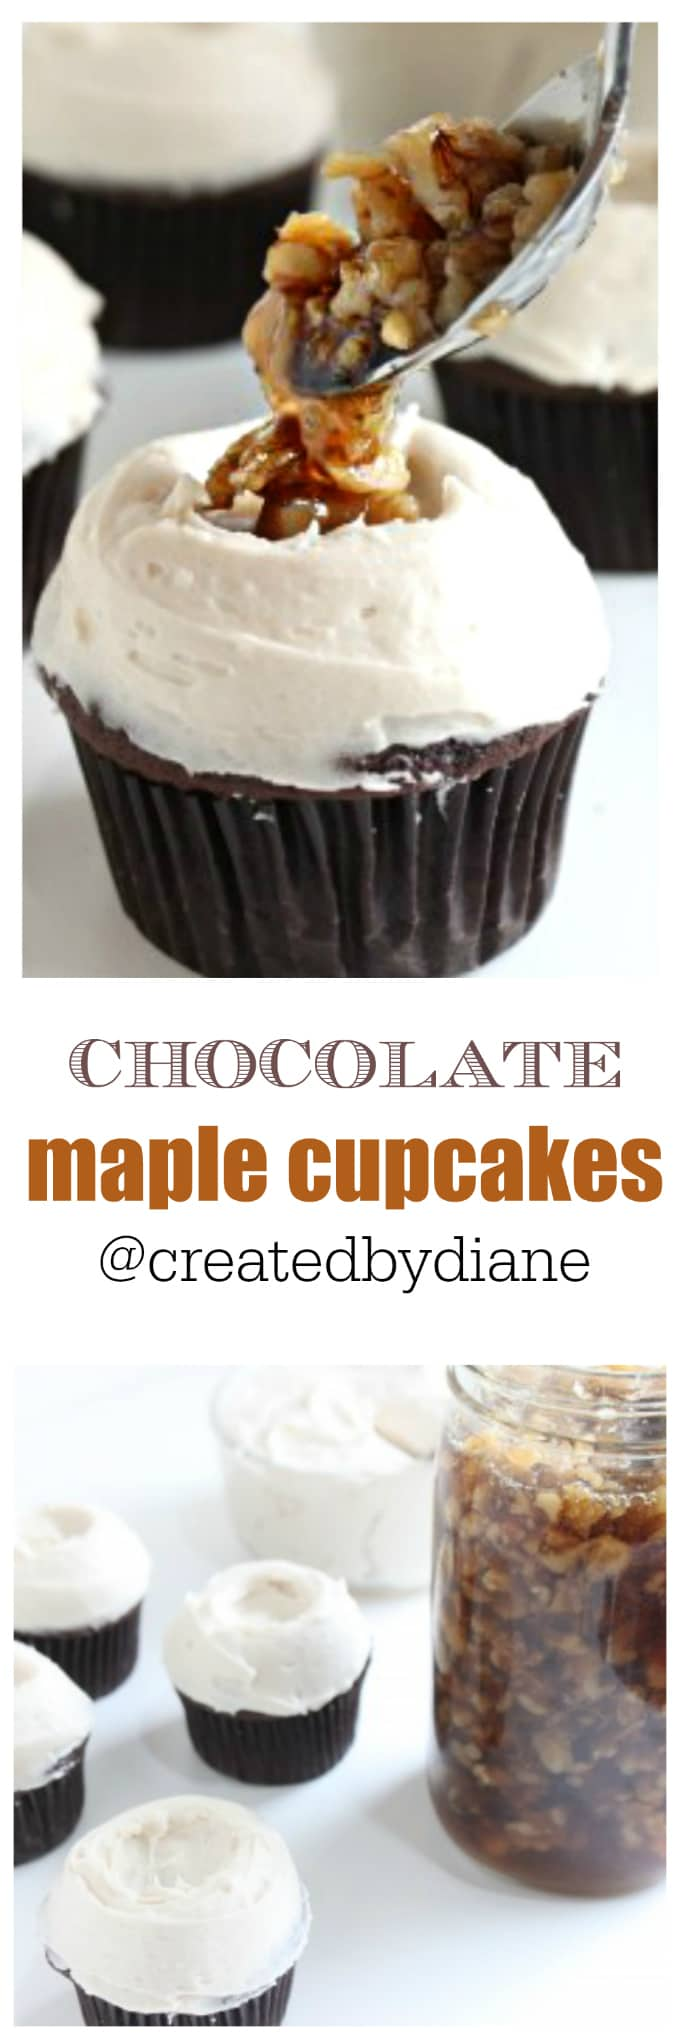 chocolate maple cupcakes @createdbydiane